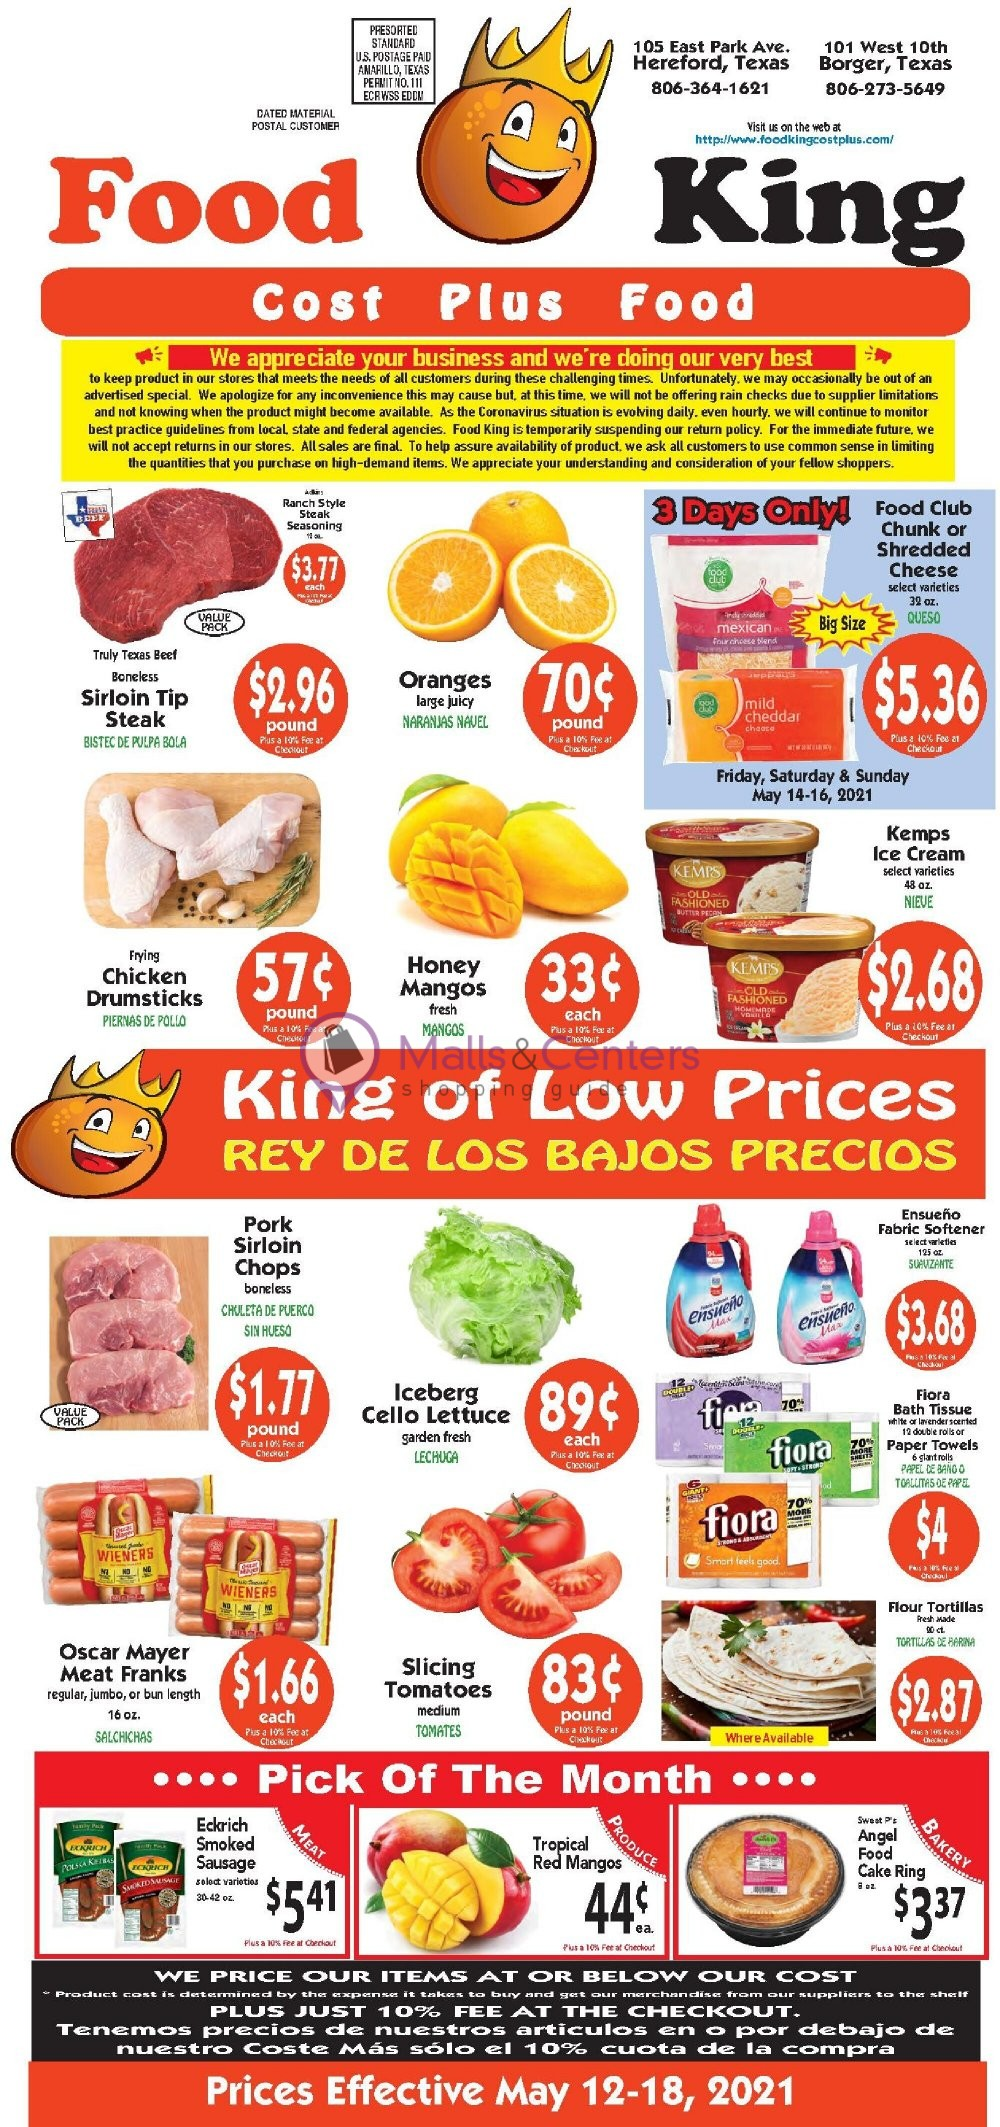 weekly ads Food King Cost Plus Food - page 1 - mallscenters.com